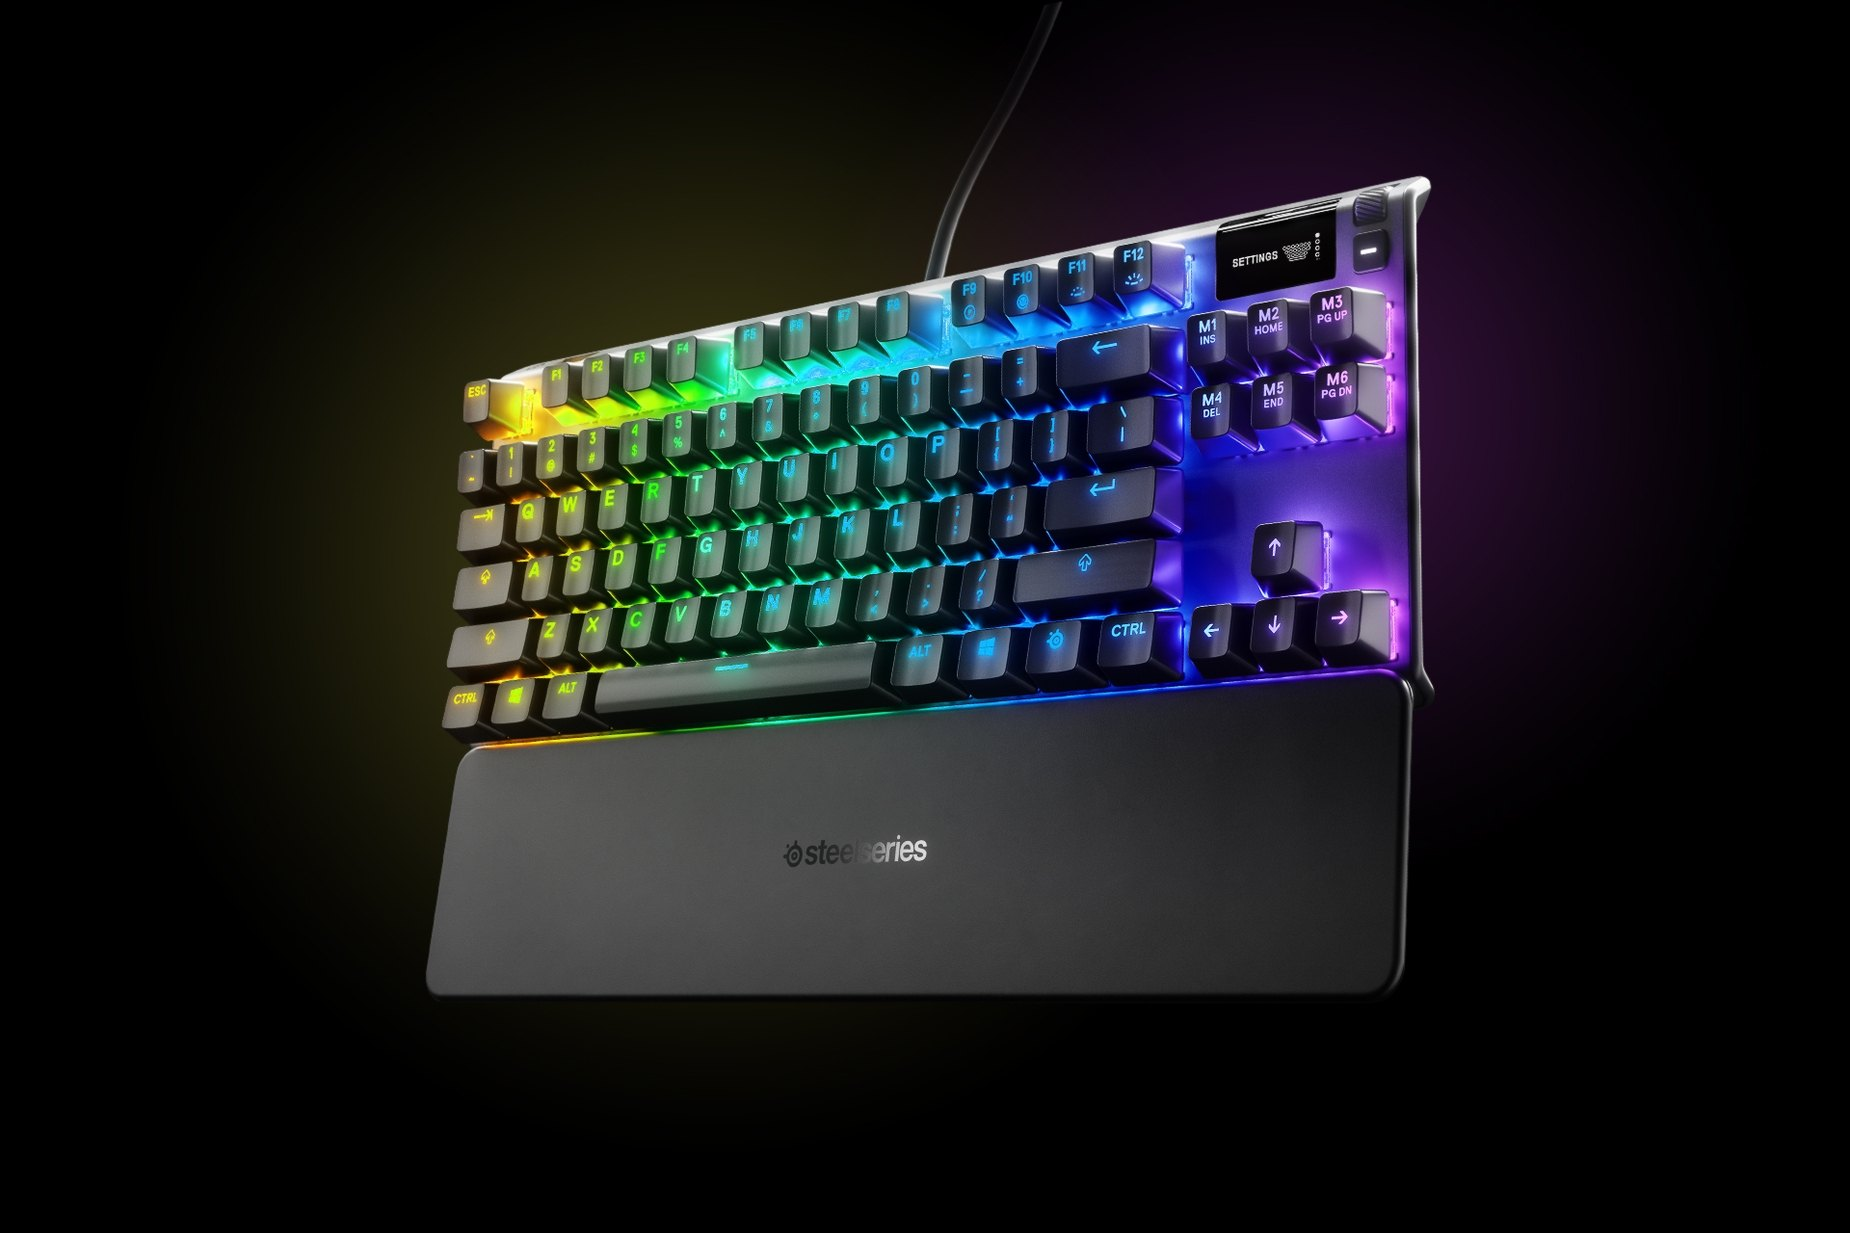 UK English - Apex 7 TKL (Blue Switch) gaming keyboard with the illumination lit up on dark background, also shows the OLED screen and controls used to change settings and adjust audio